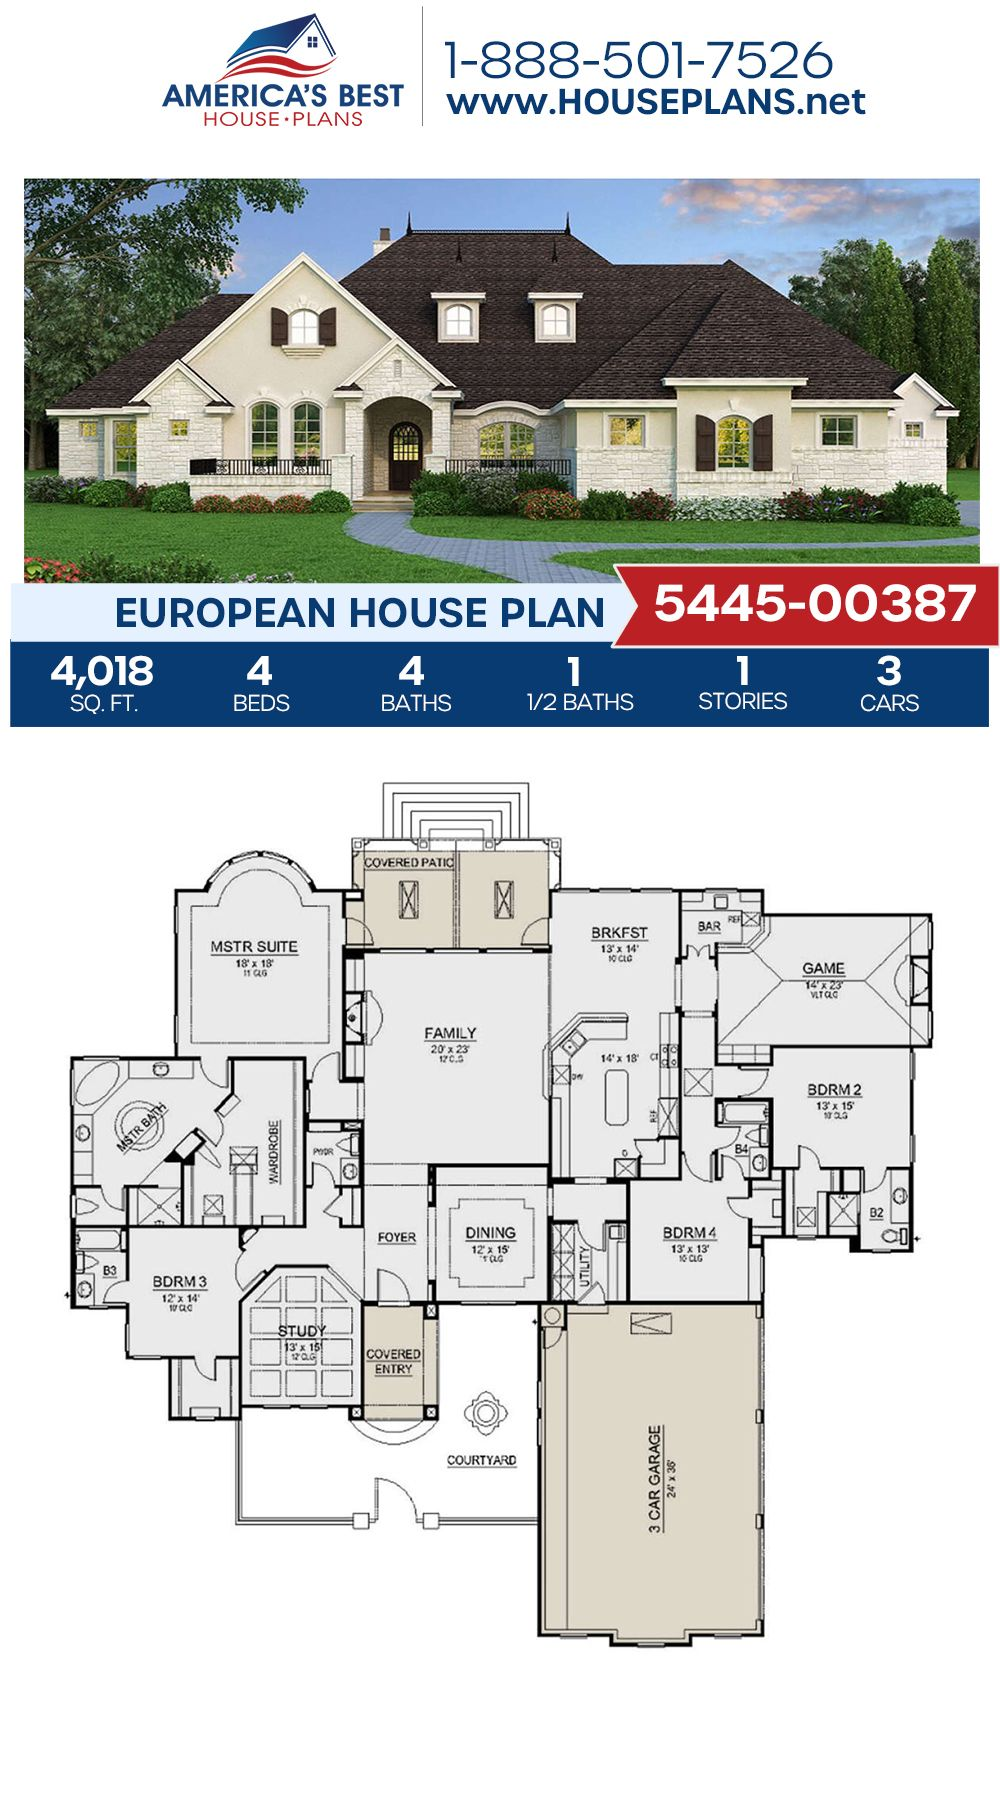 House Plan 5445 00387 European Plan 4 018 Square Feet 4 Bedrooms 4 5 Bathrooms In 2020 Craftsman House Plans European House Dream House Plans